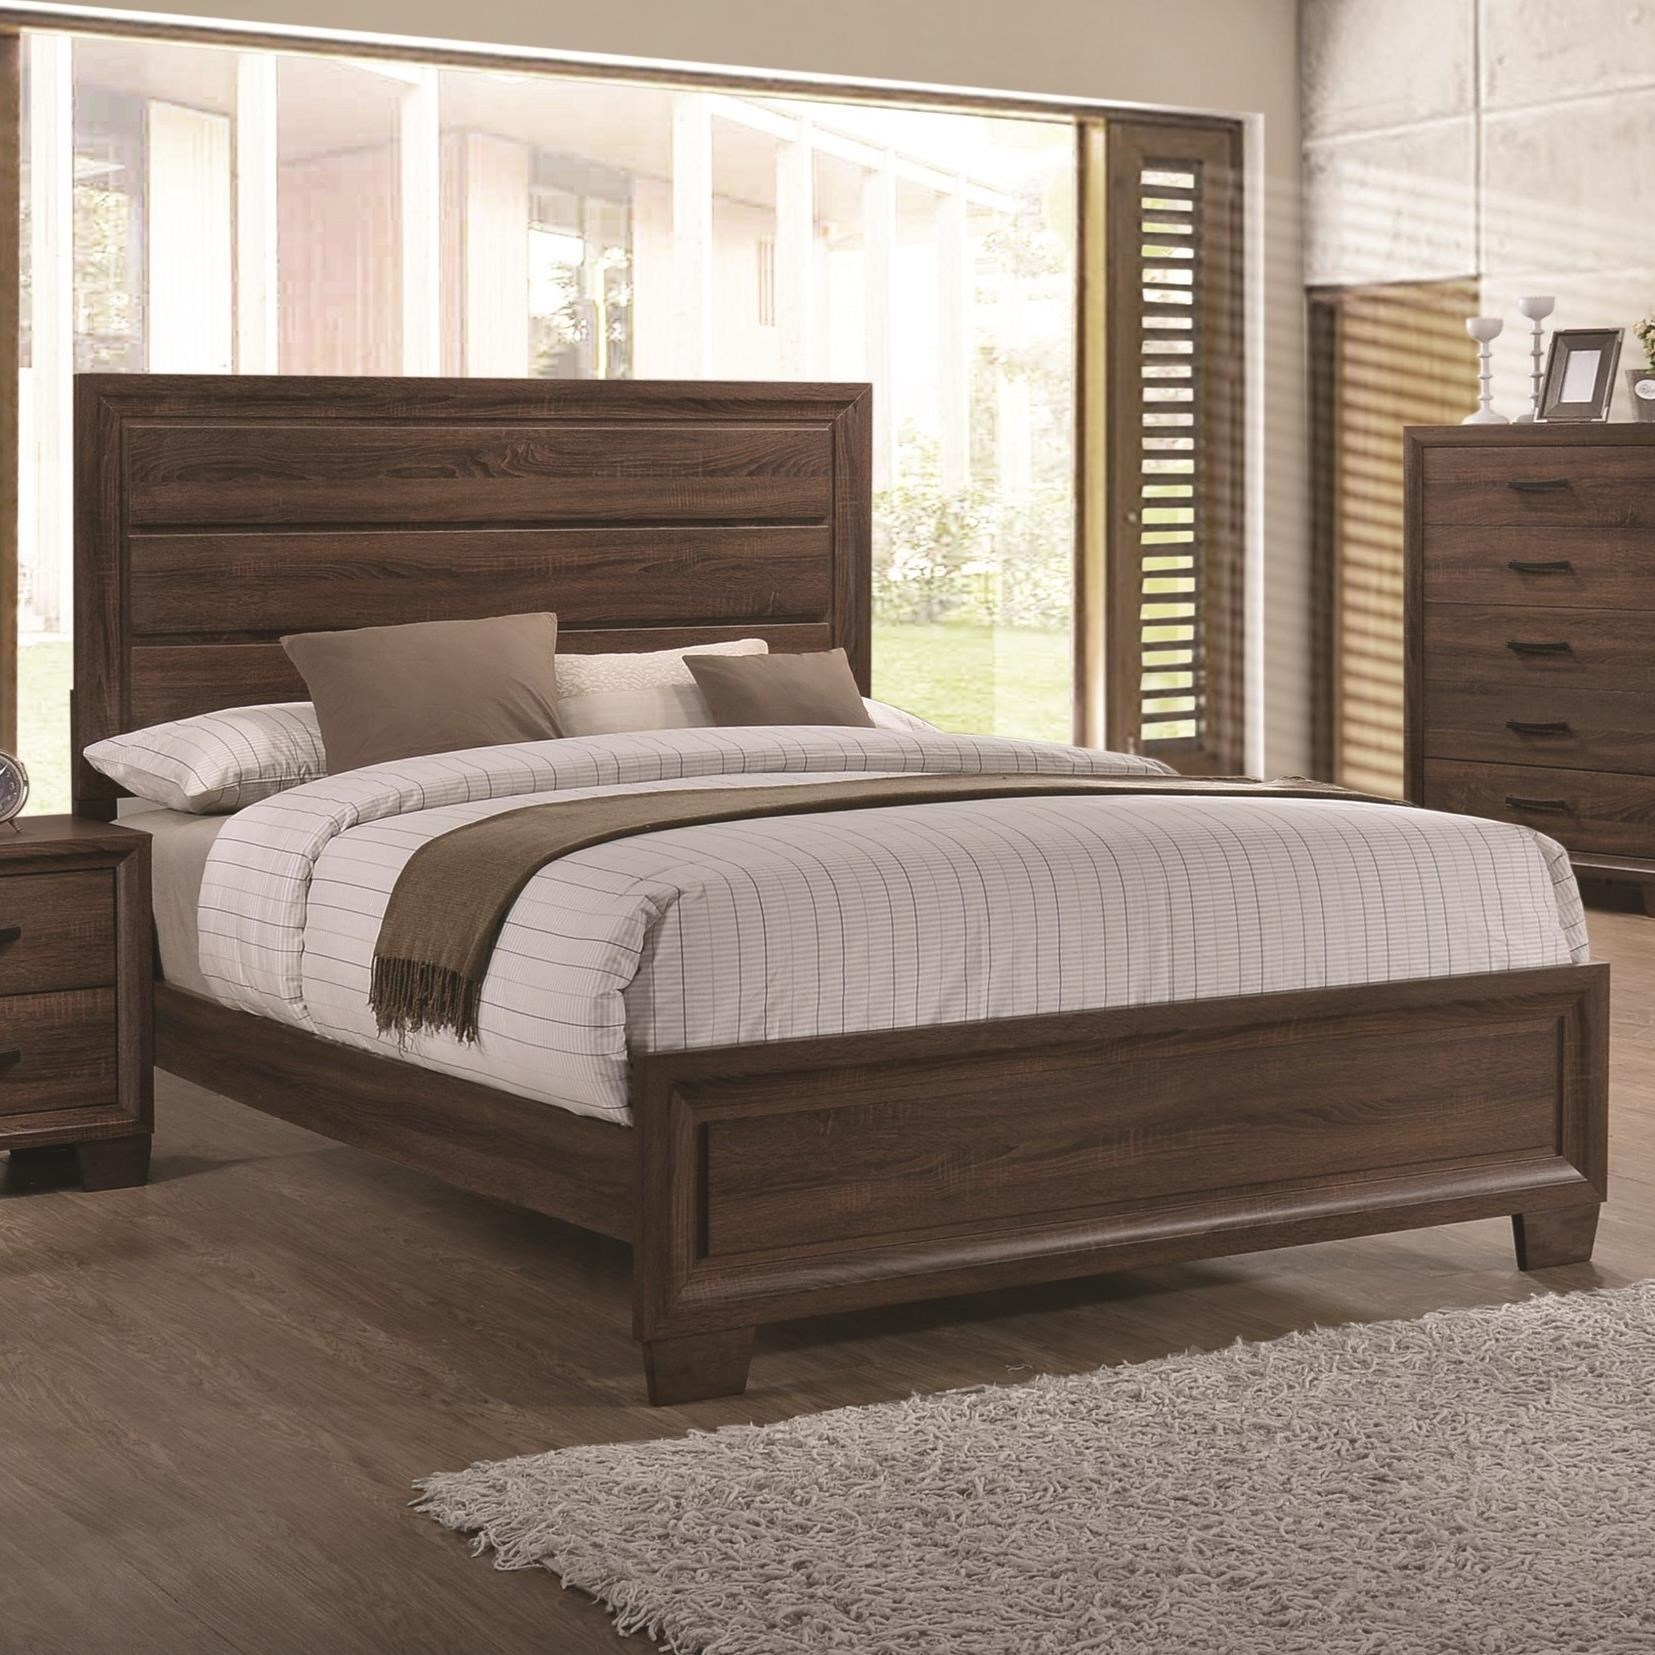 Fine Furniture Brandon 205321Q Transitionally Styled Queen